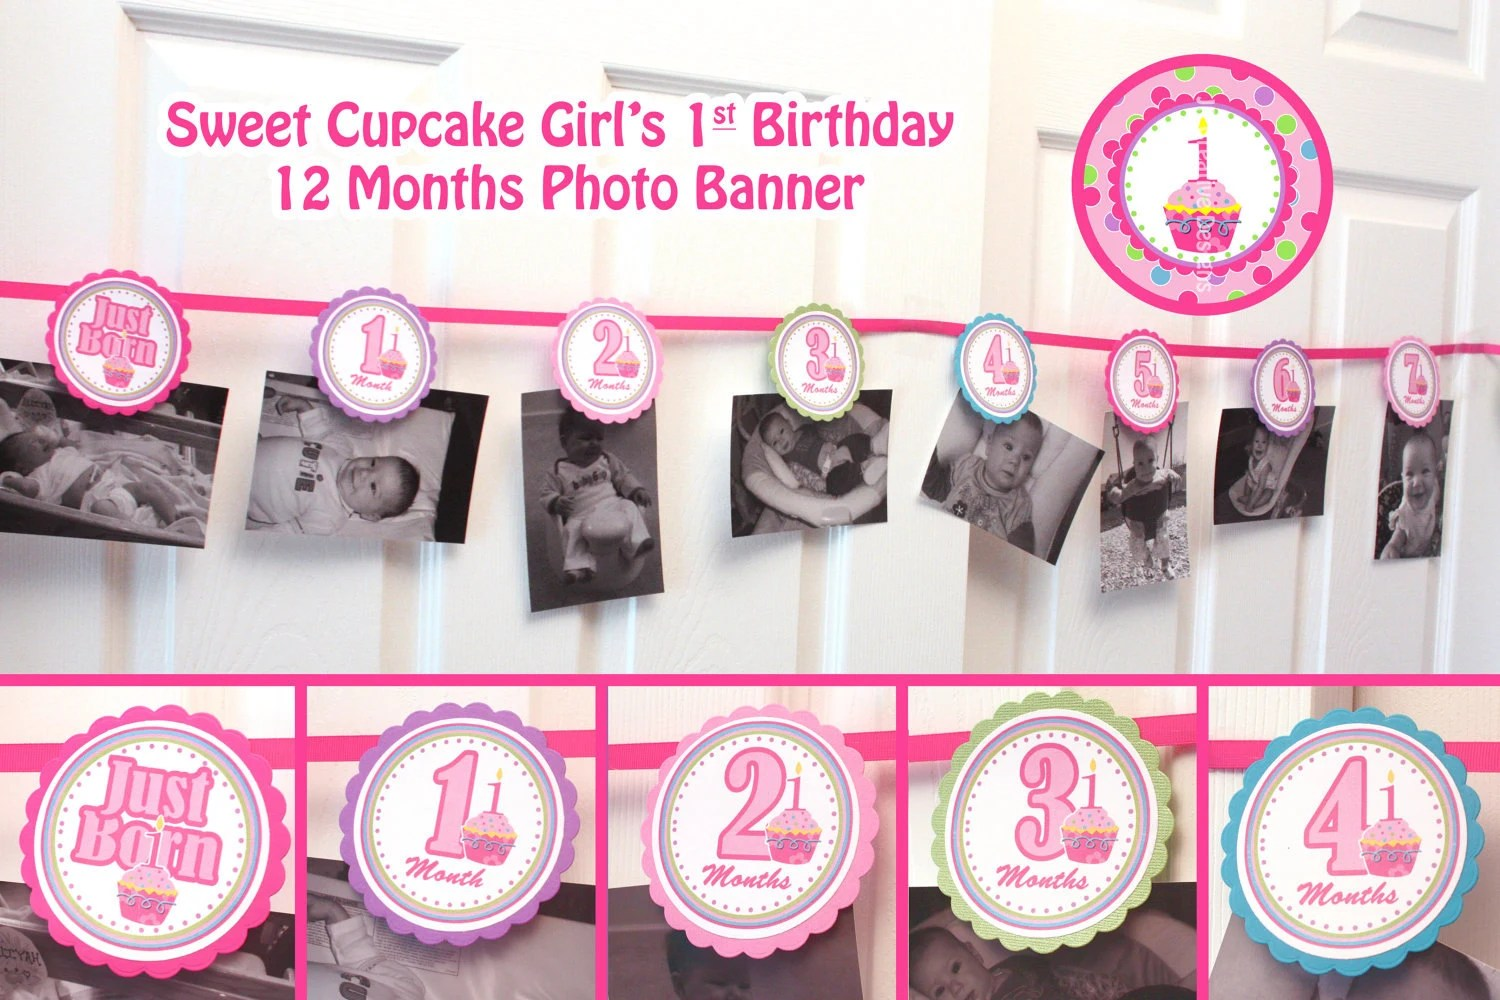 Photo banner picture banner 1st birthday banner girl 12 month photo - first birthday banner